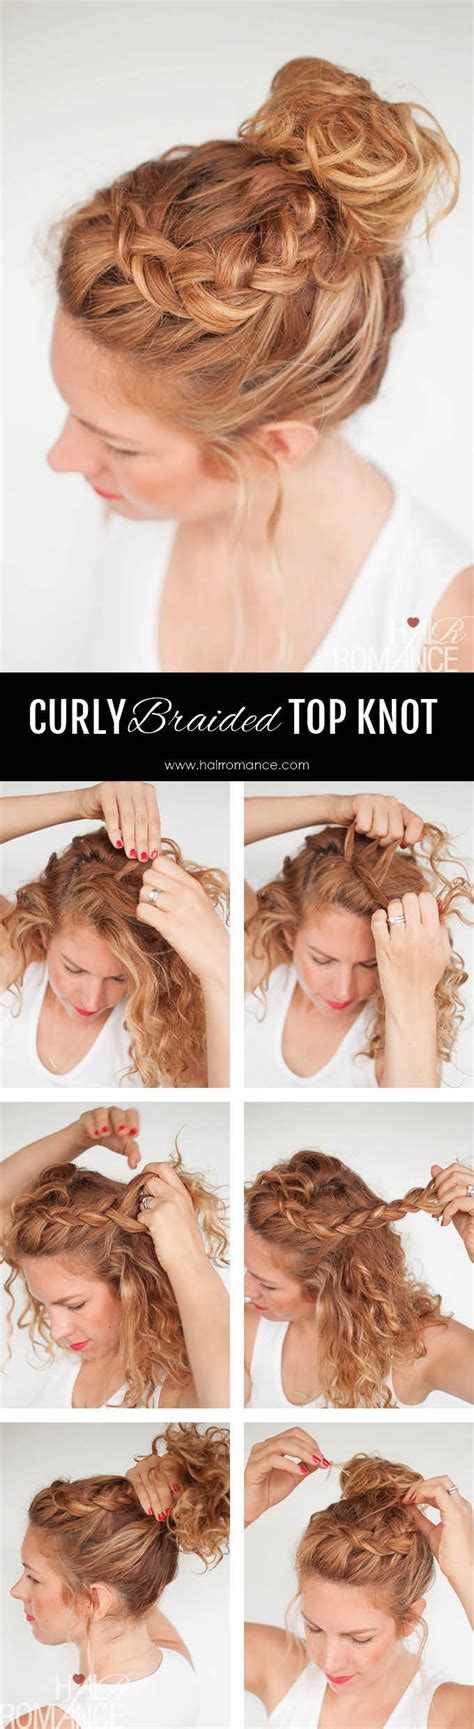 Curly Braided Hairstyles by Curly Braided Top Knot Hairstyle Pictures Photos And